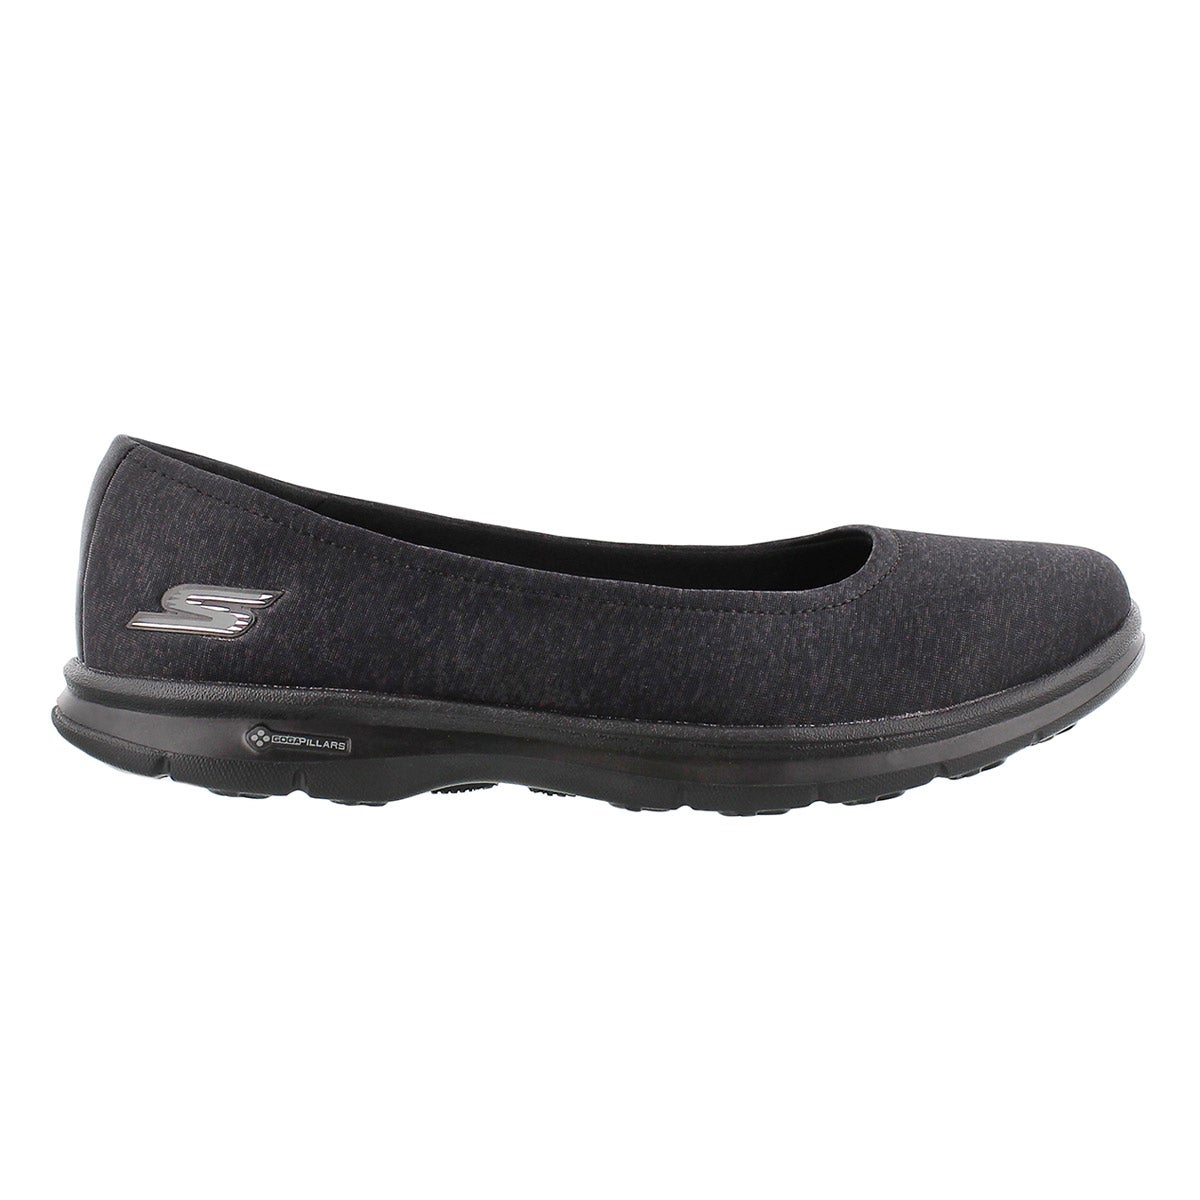 Lds GOstep Challenge blk walking shoe